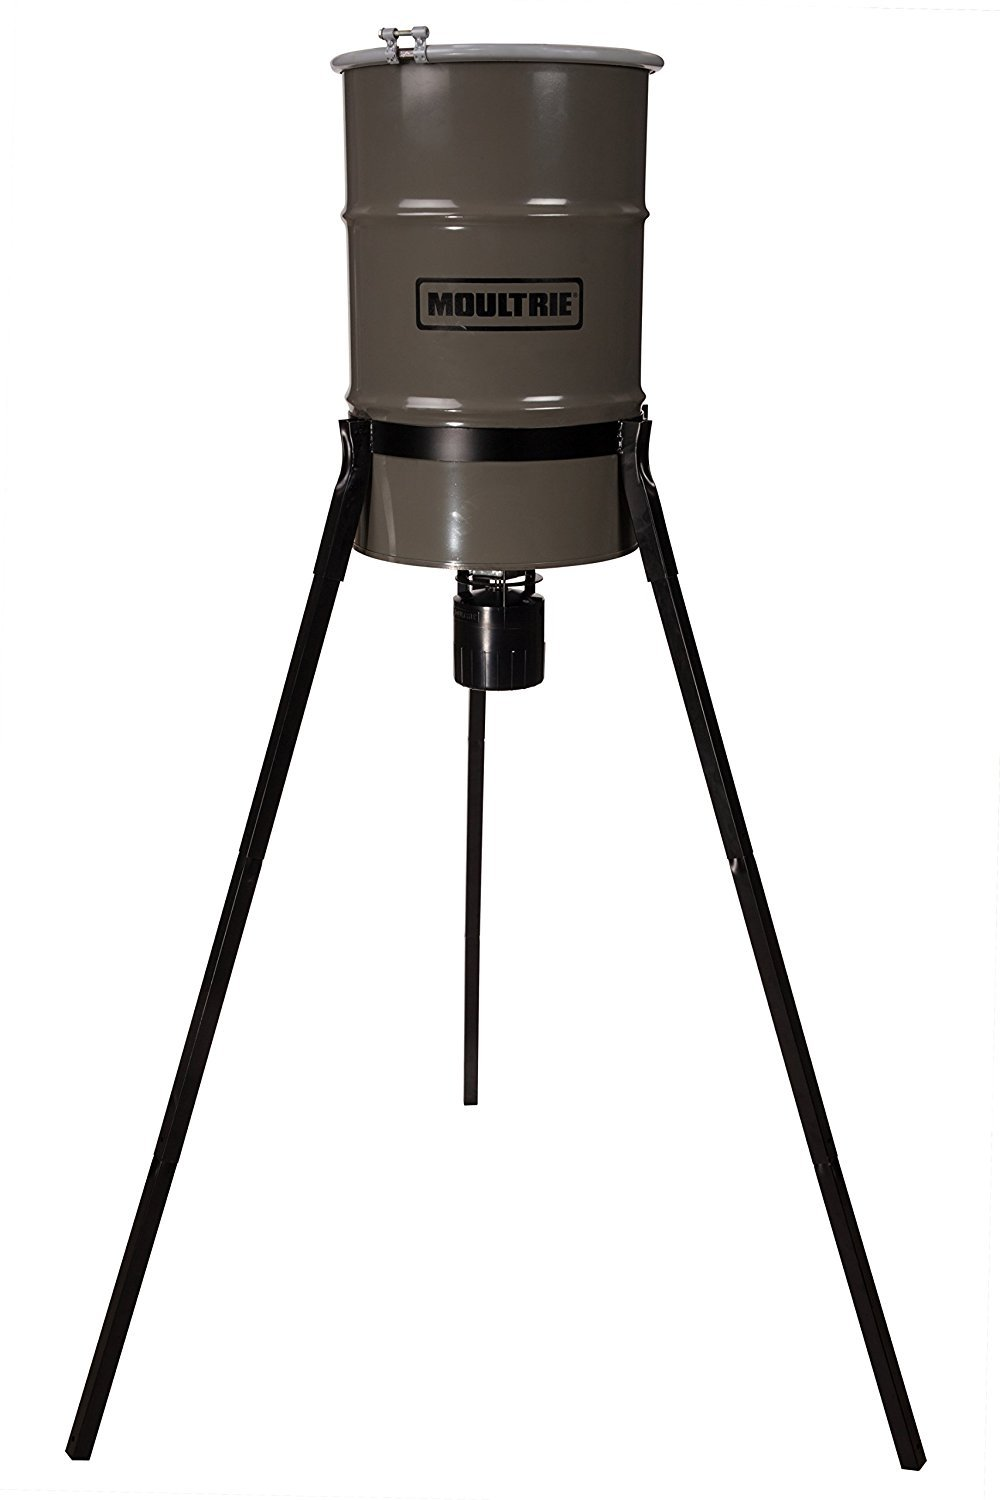 Moultrie 30-Gallon PRO Hunter Tripod by Moultrie